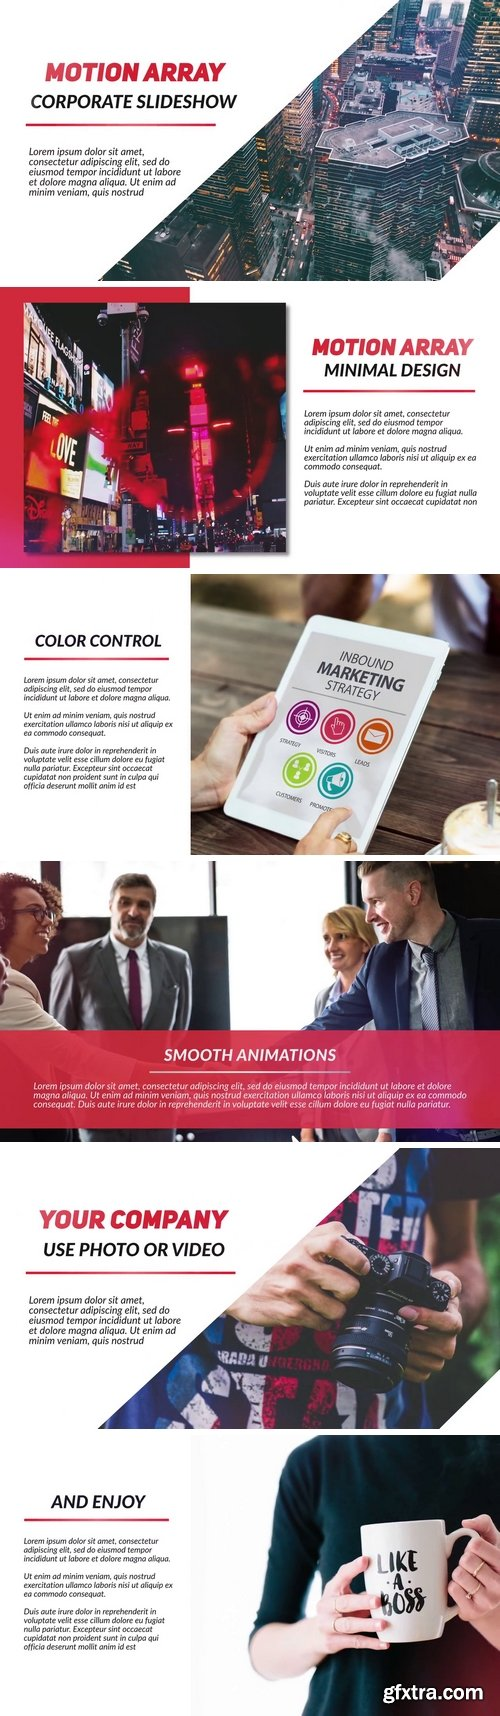 MA - Corporate Slideshow After Effects Templates 149955